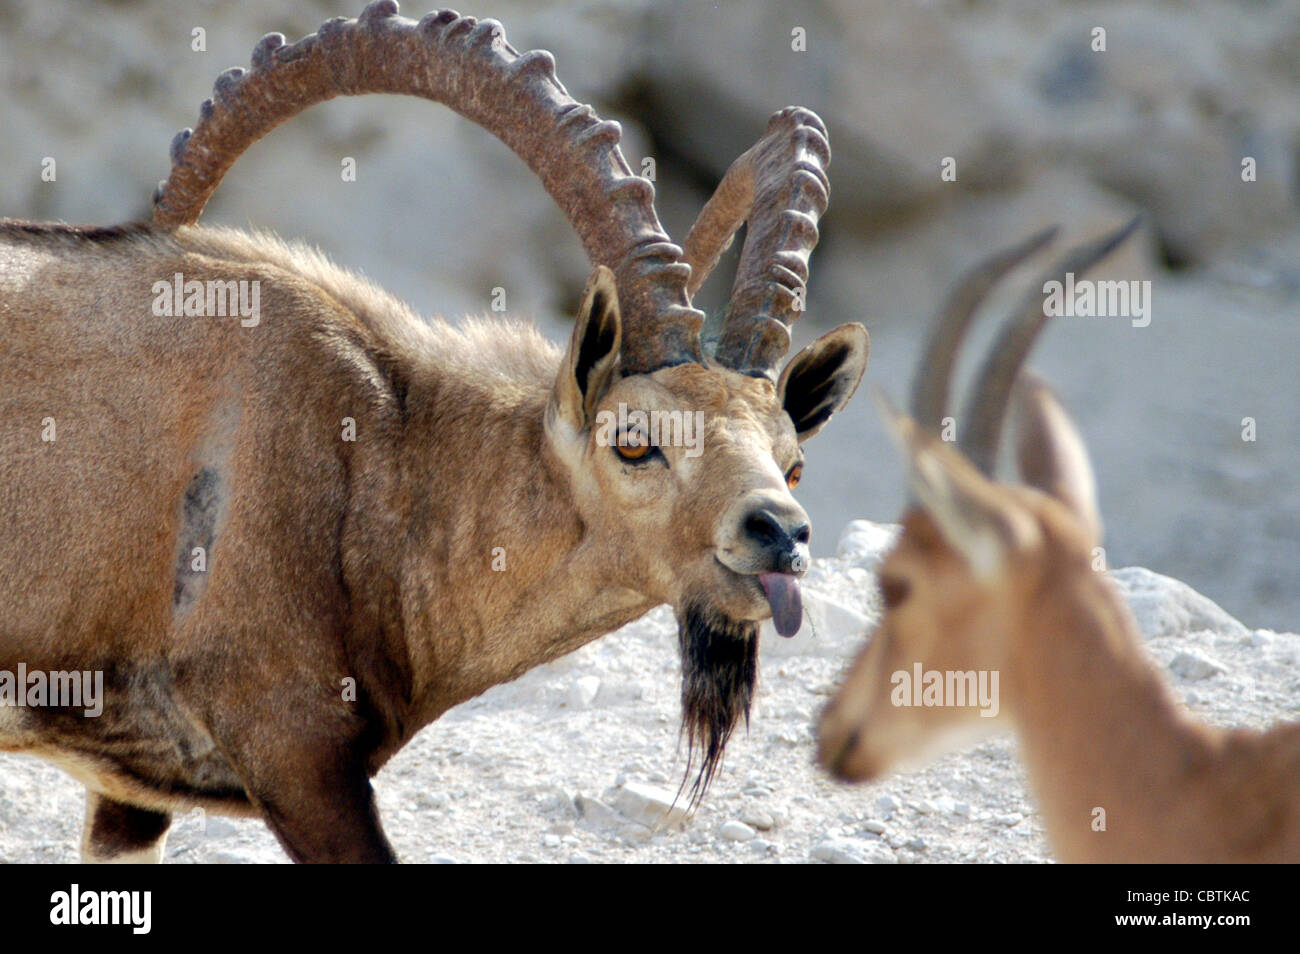 An Ibex Mountain goat pokes is tounge out while fighting over female/territory near the Dead Sea, Israel. - Stock Image